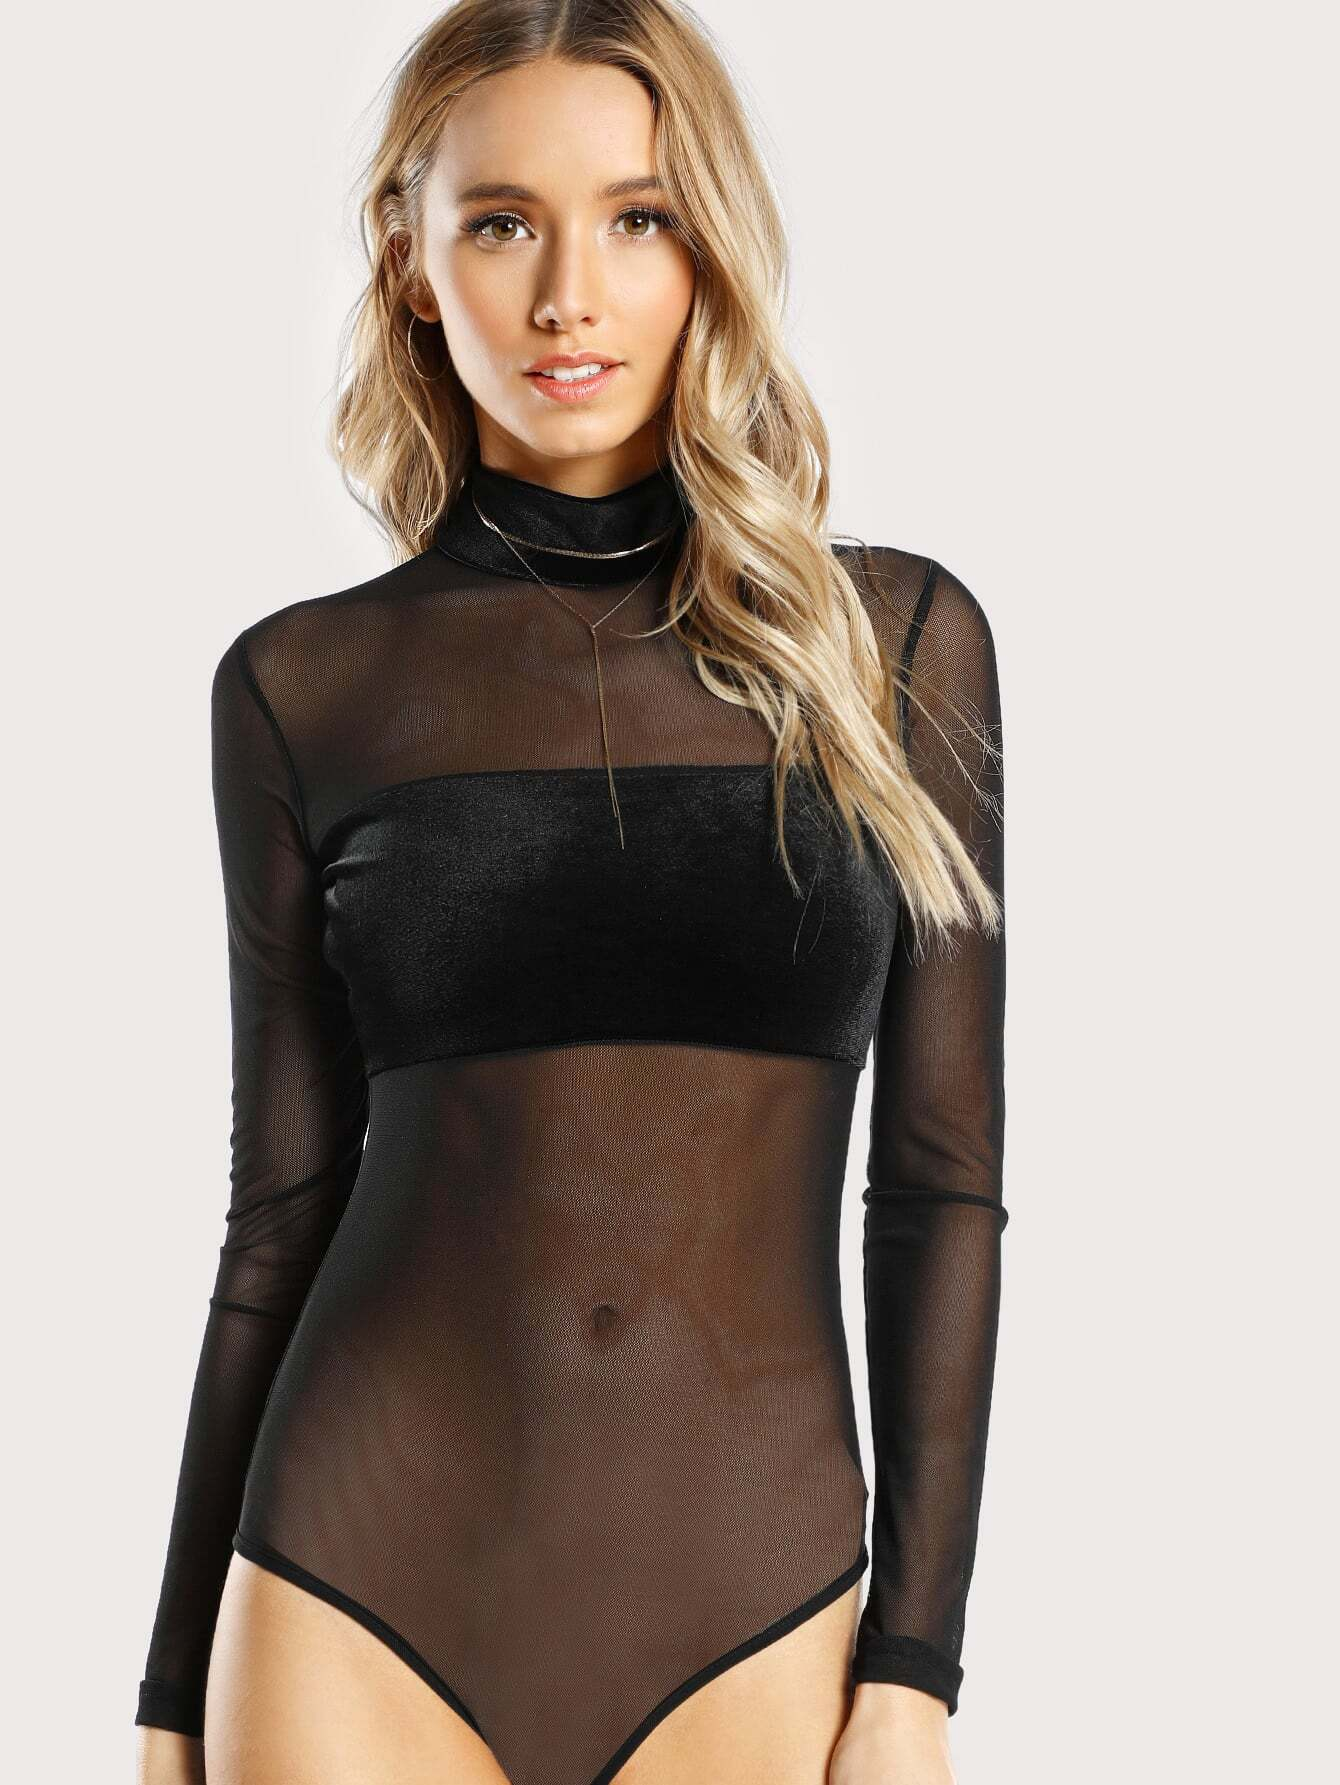 Velvet Panel Sheer Mesh Bodysuit sheer mesh panel colorblock legging